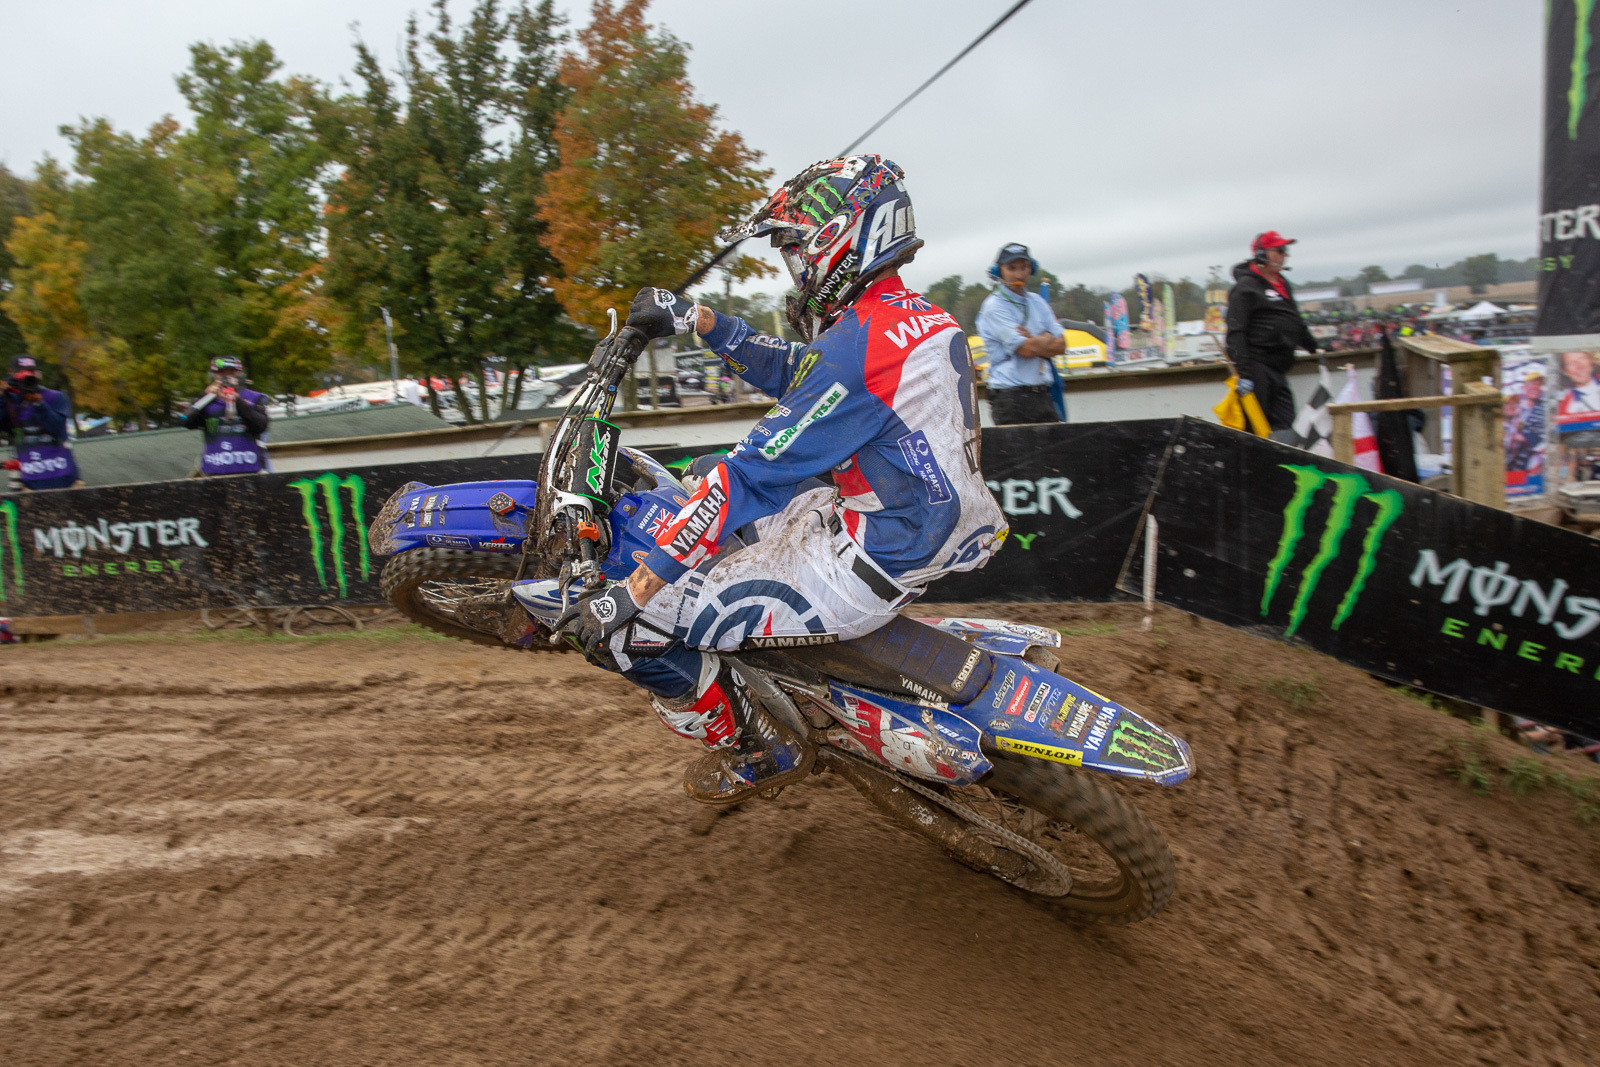 MX2 bikes were 2-3-4 in moto two, with Great Britain's Ben Watson at the tail end of that trio.